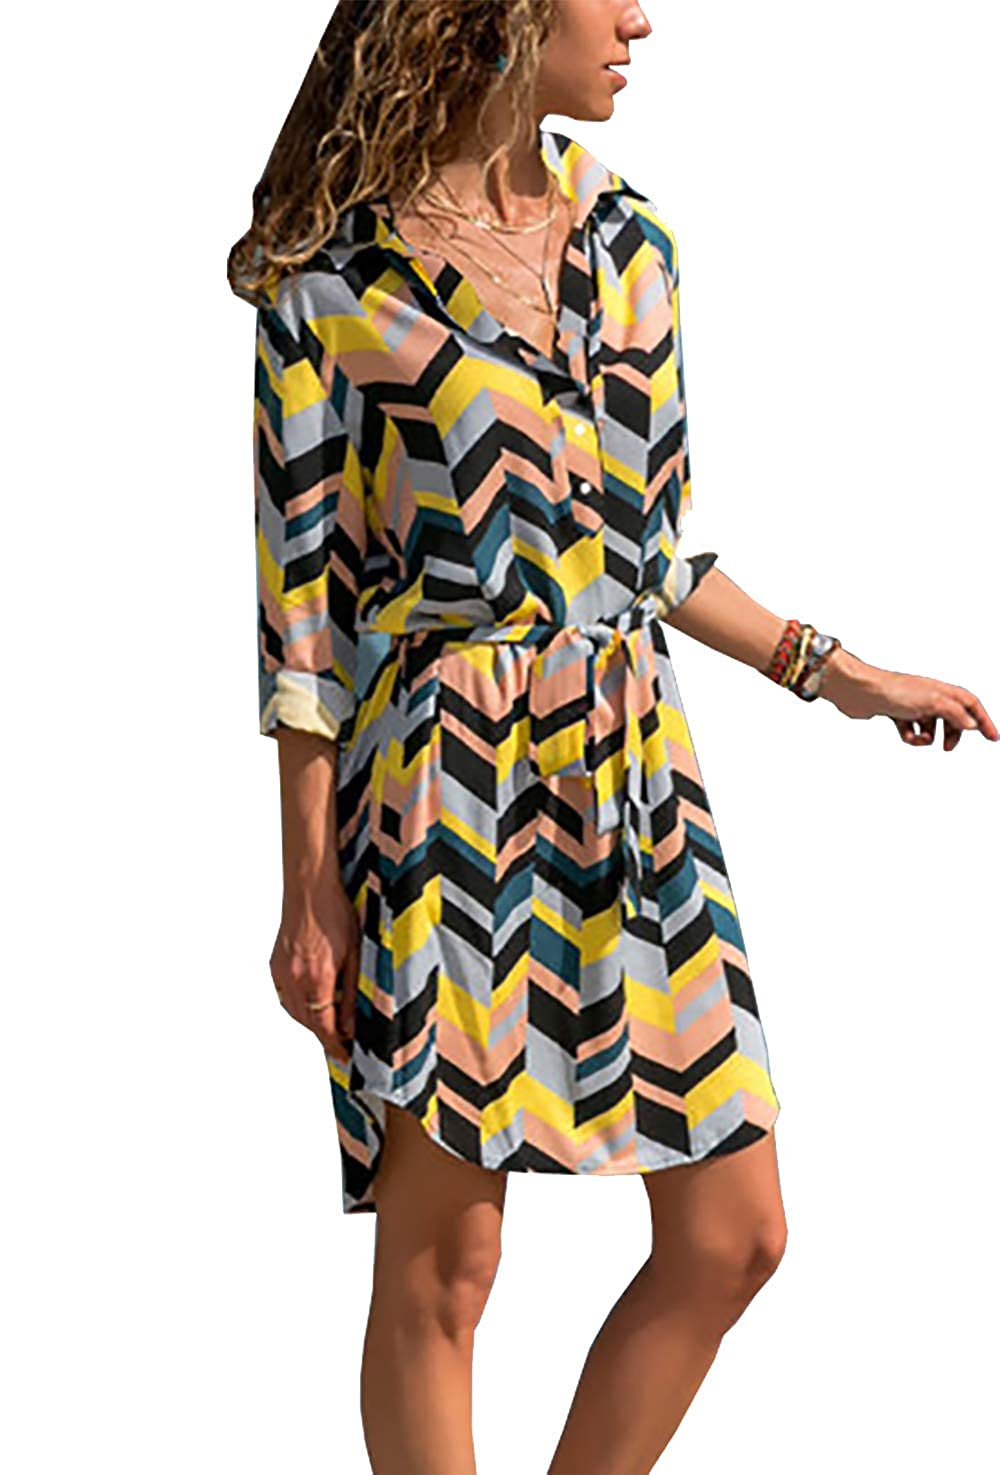 872b0eb6030 PRETTYGARDEN Women s Stripe Printed Hi-Lo Hem Side Split Roll-up Long Sleeve  Button Down Collar Belted Midi Shirt Dress Tops at Amazon Women s Clothing  ...